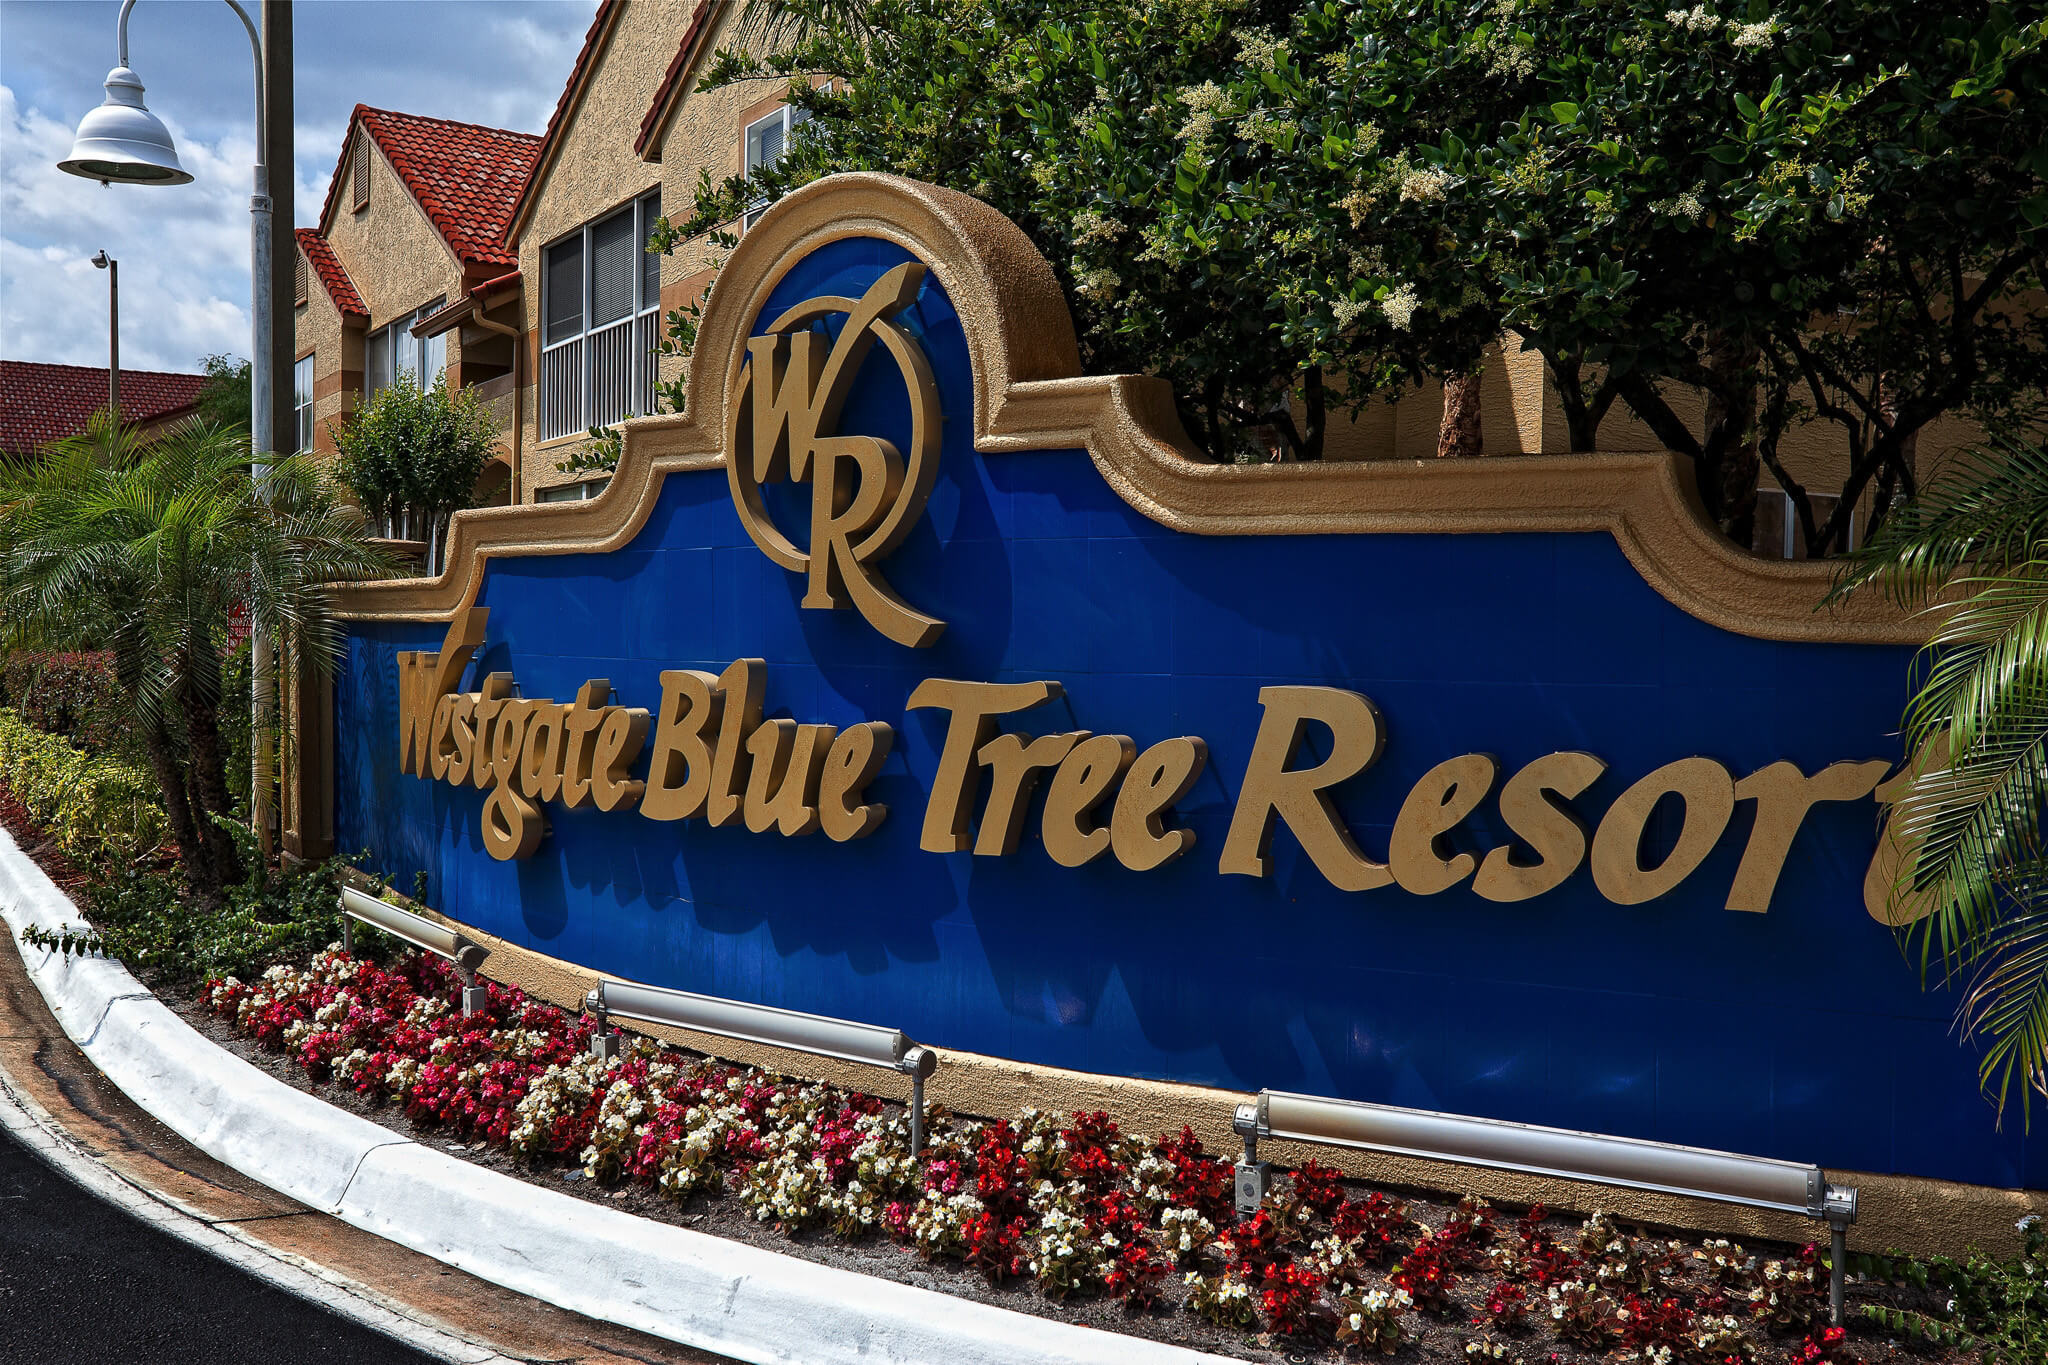 Take a virtual tour through our family friendly resort, Westgate Blue Tree Resort.